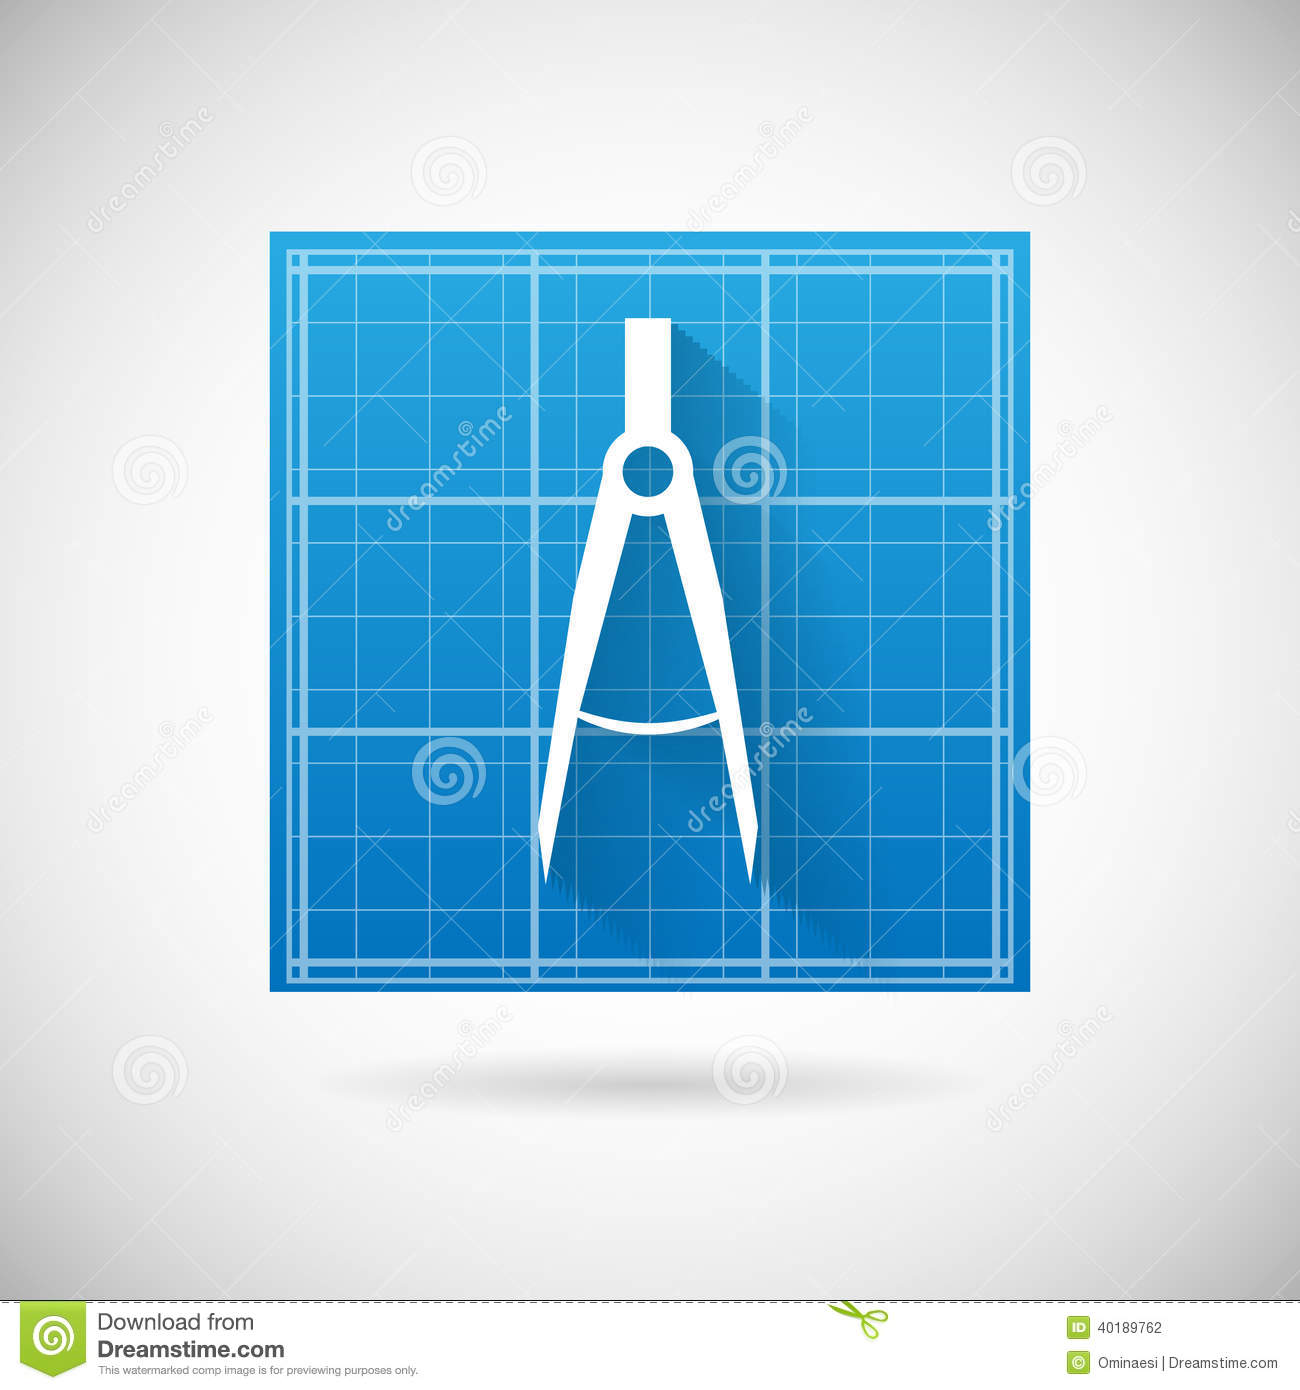 mercial Plumbing Blueprints besides How To Draw Cross Sections in addition Physics chart symbols moreover Drawing Trade Related Electrical Electronic Symbols moreover Airplane sketch. on blueprint drawing symbols